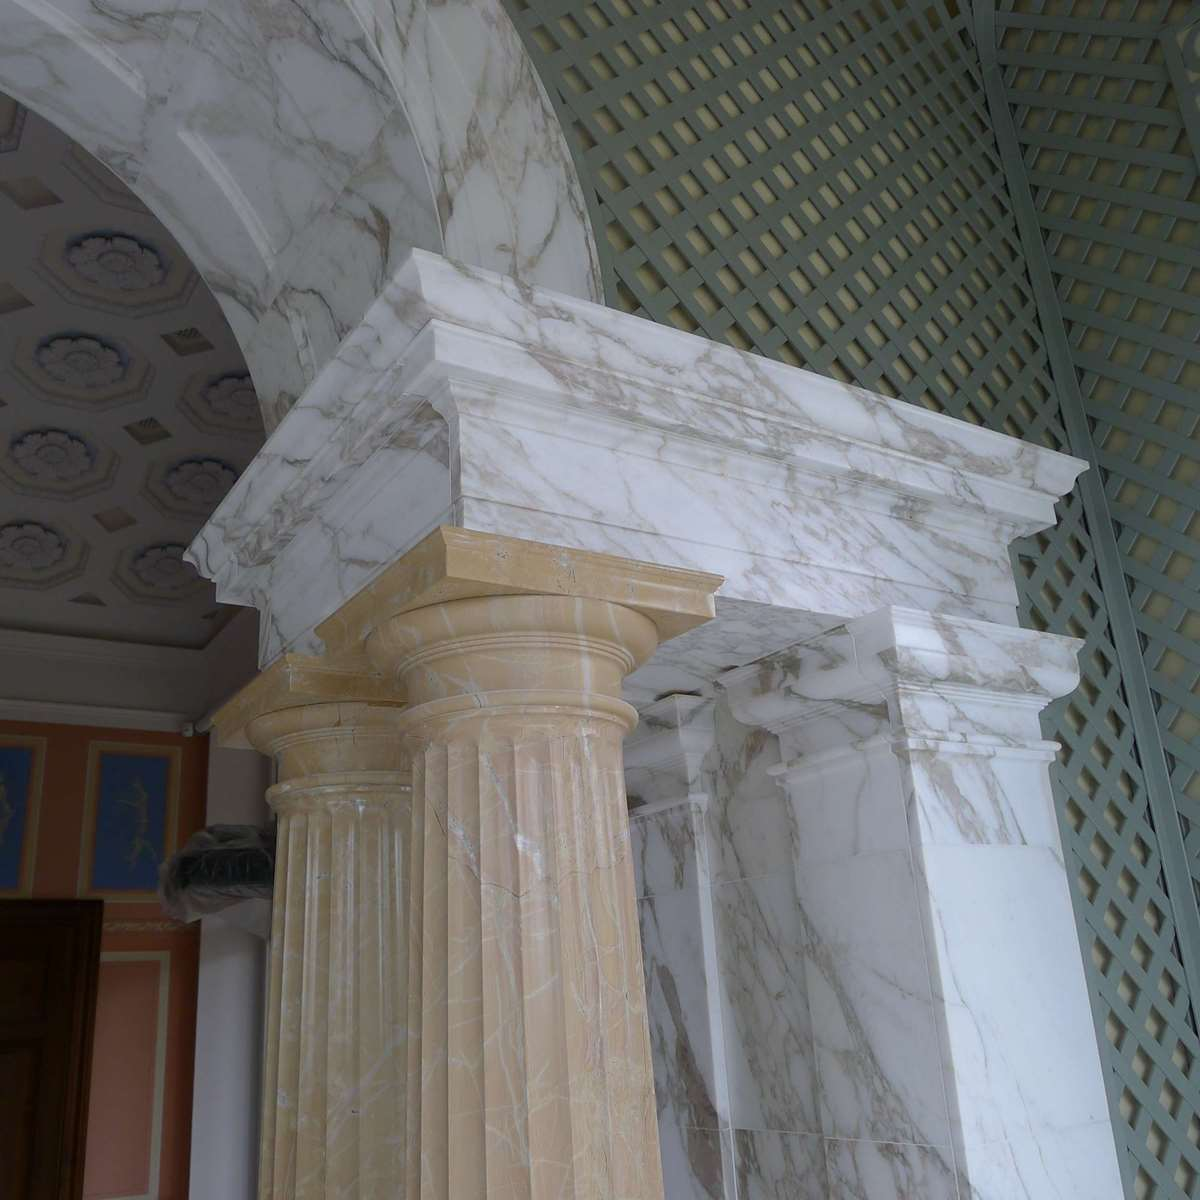 COLUMNS OF NATURAL STONE